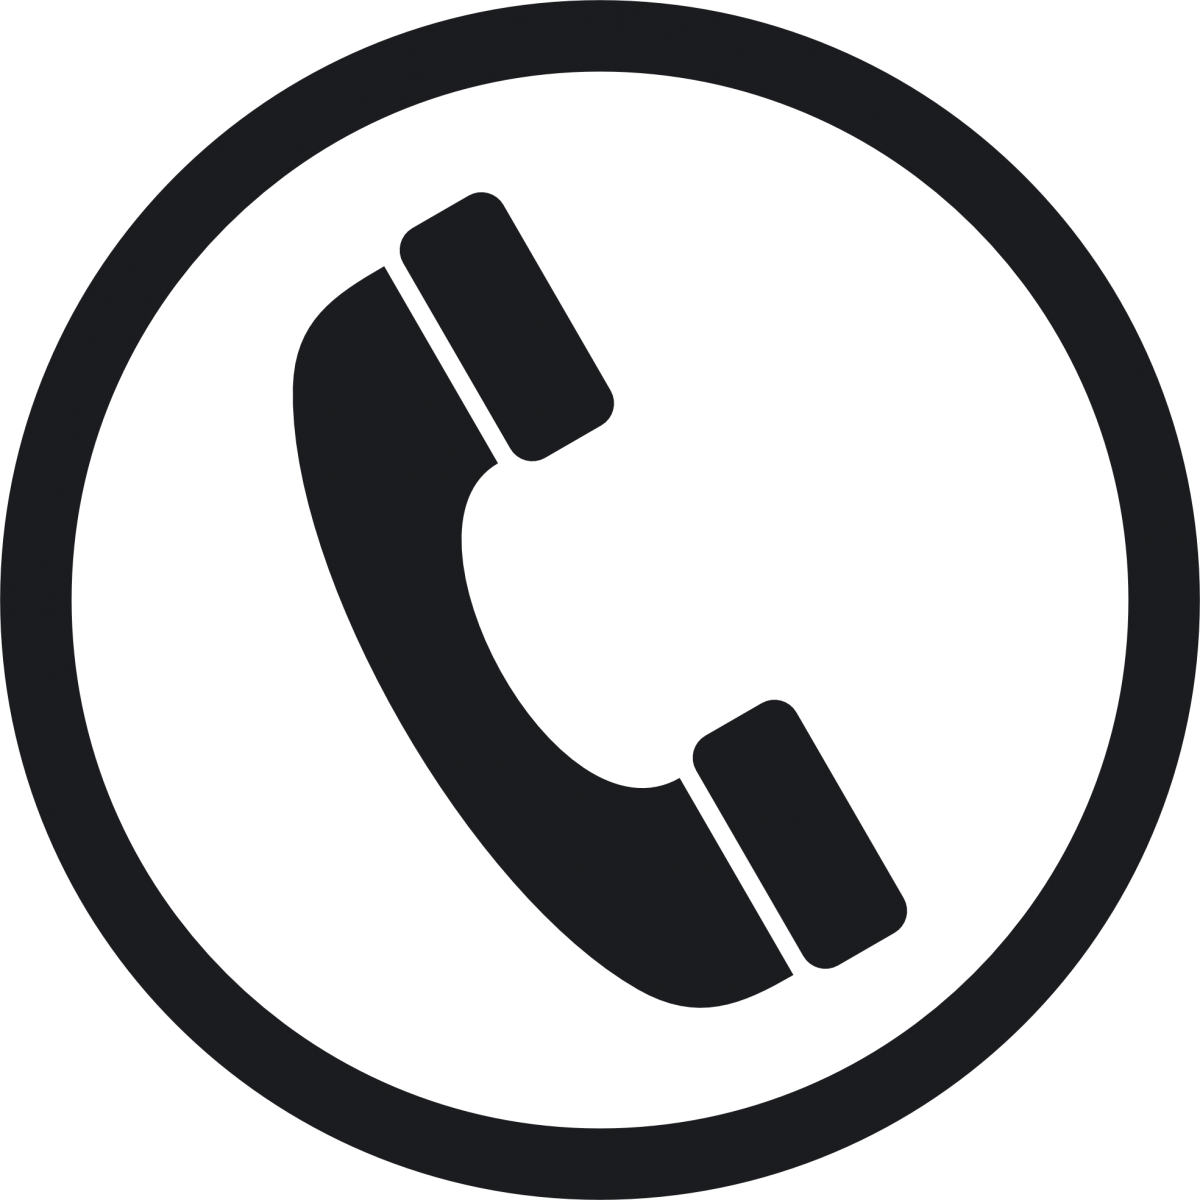 kisspng-telephone-icon-phone-png-file-5a753b46265fe1.5997722815176323261572.png